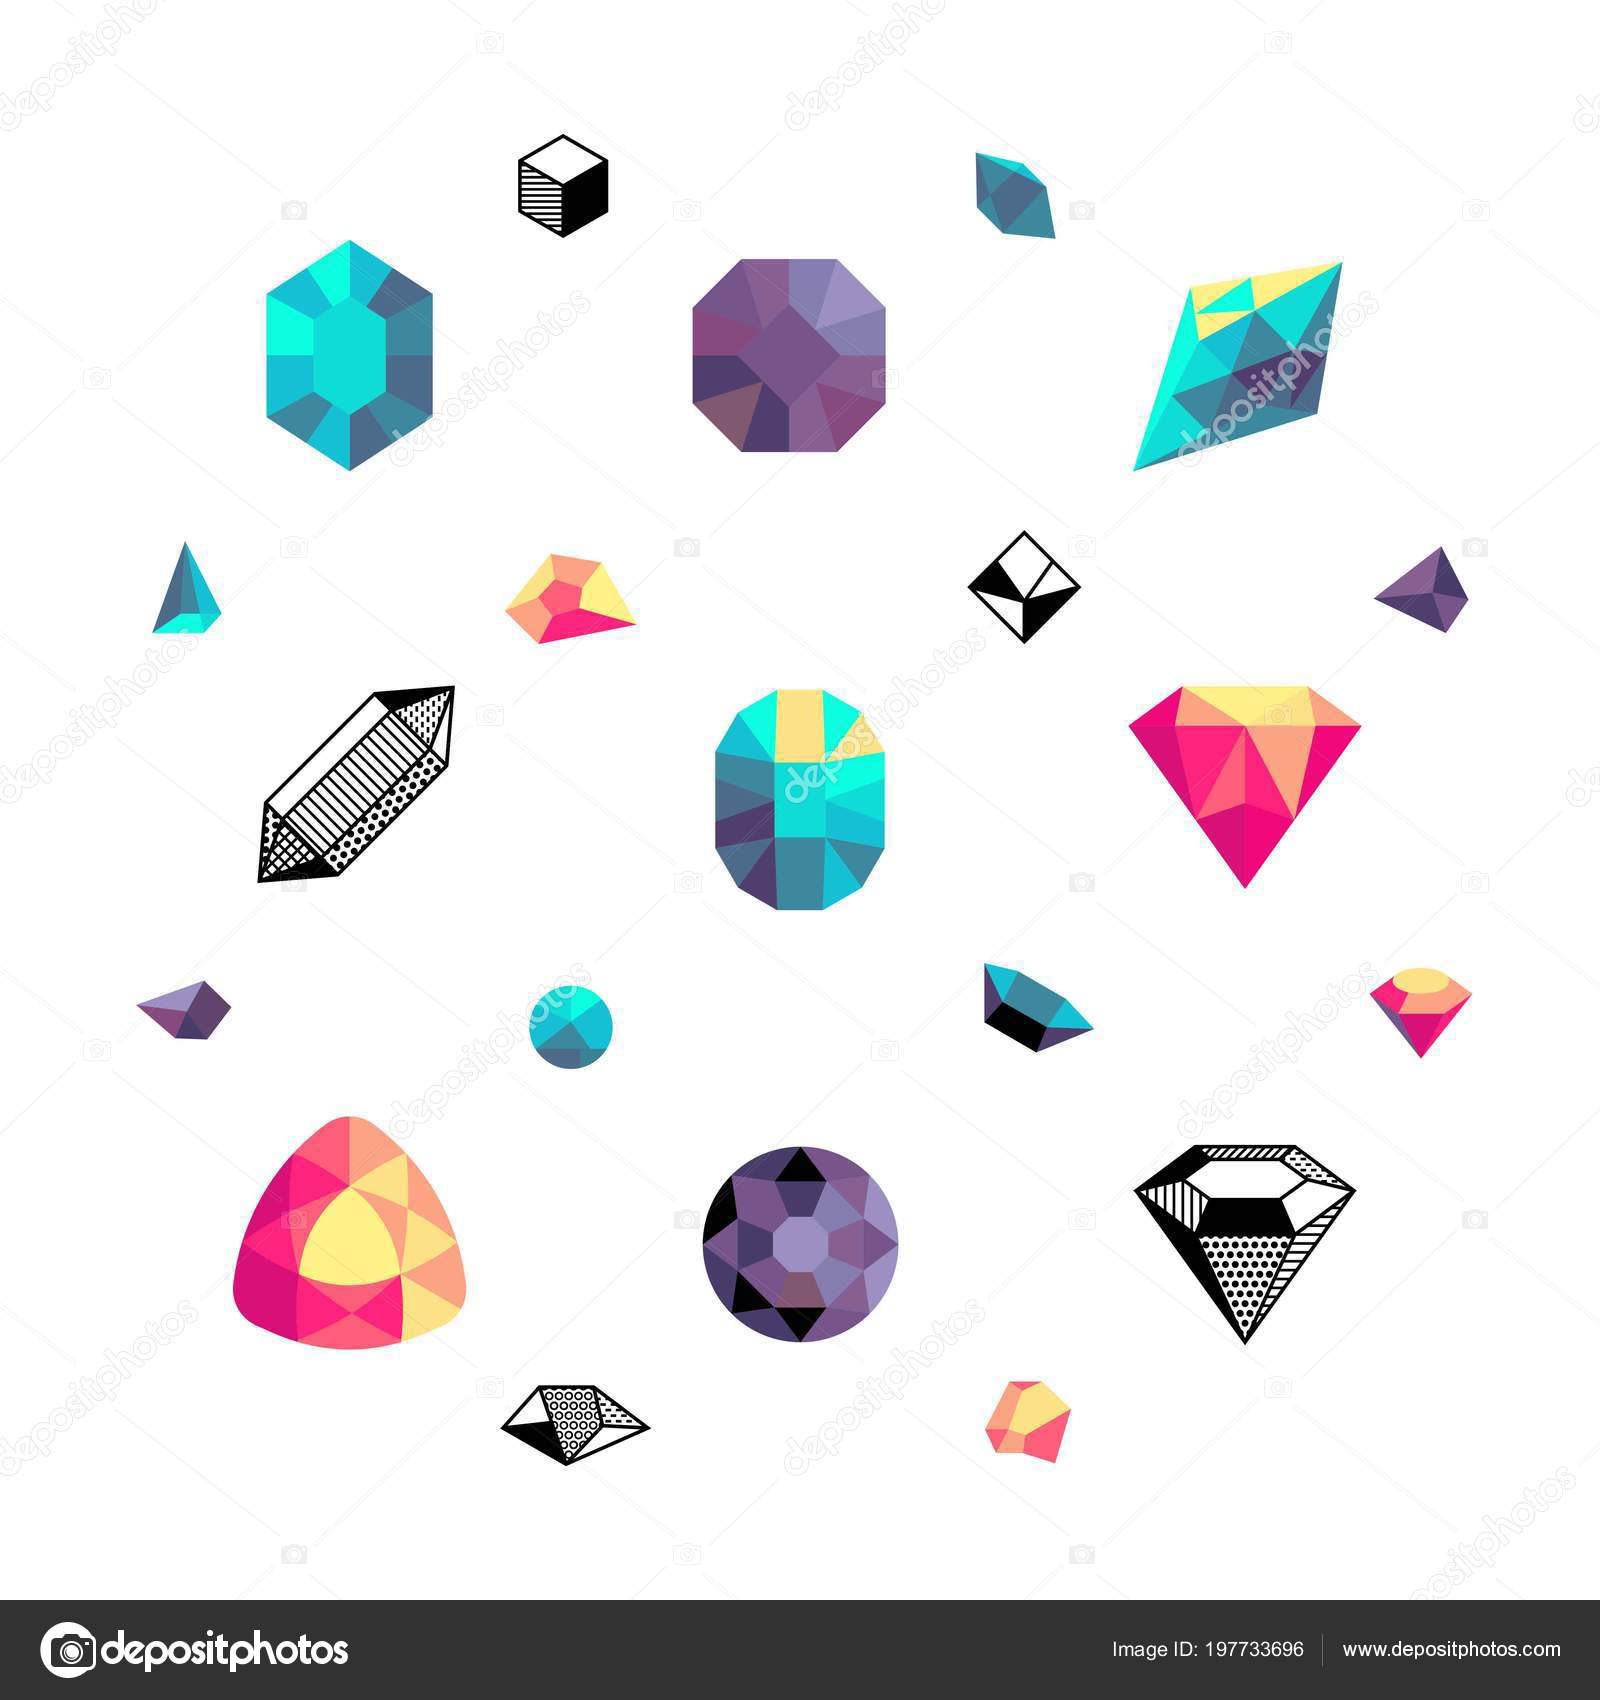 mosaic background polygon colorful heart broken valentine stock diamond vector depositphotos illustration geometric abstract pattern